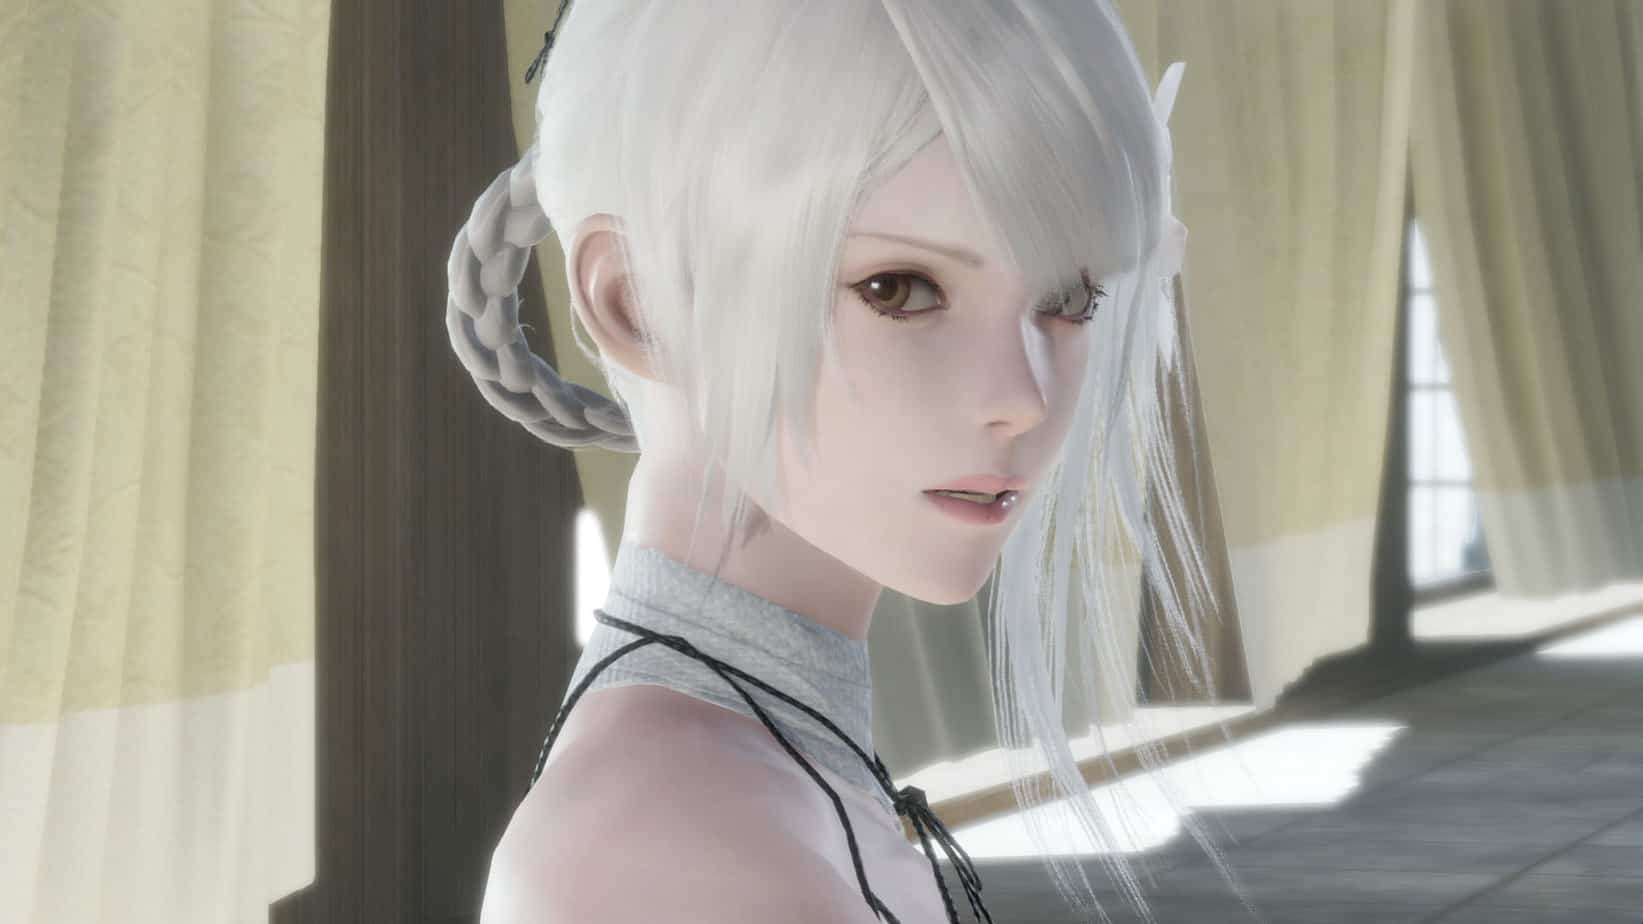 Kaine is one of the central characters of Nier Replicant